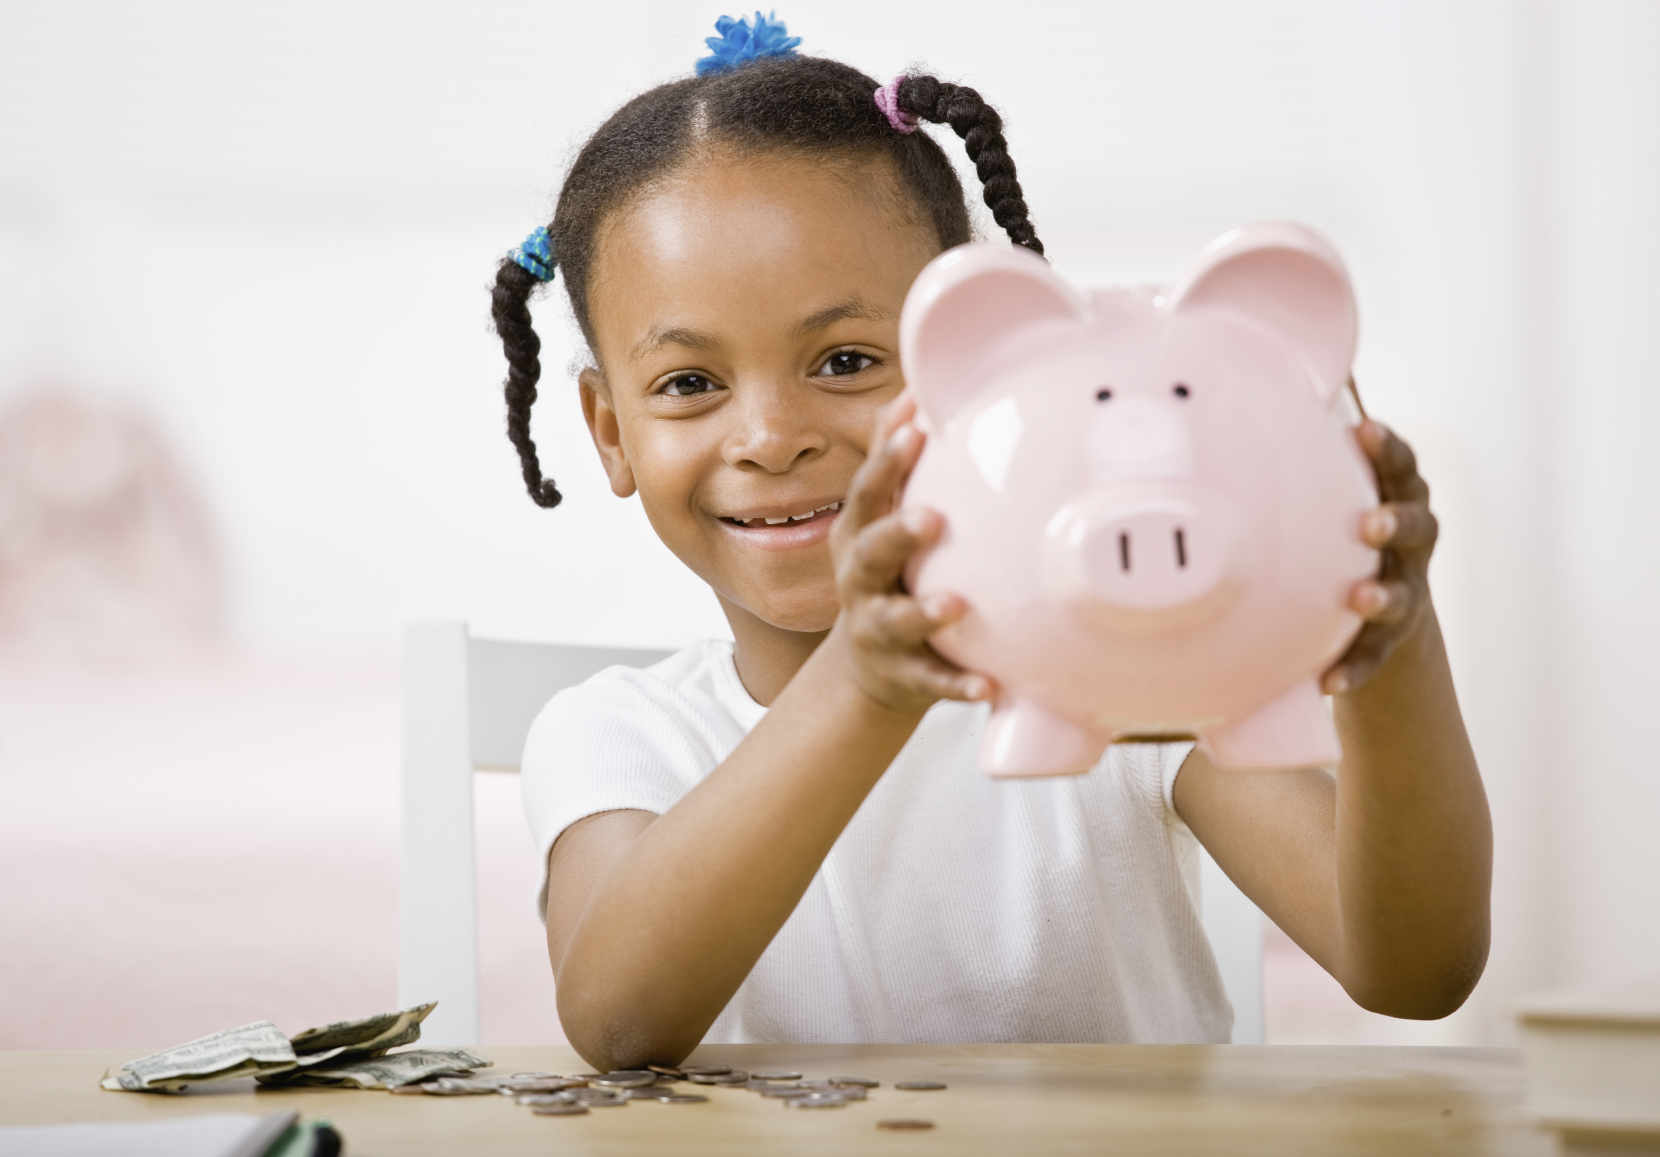 A young girl proudly holds up her piggy bank. (stock image)